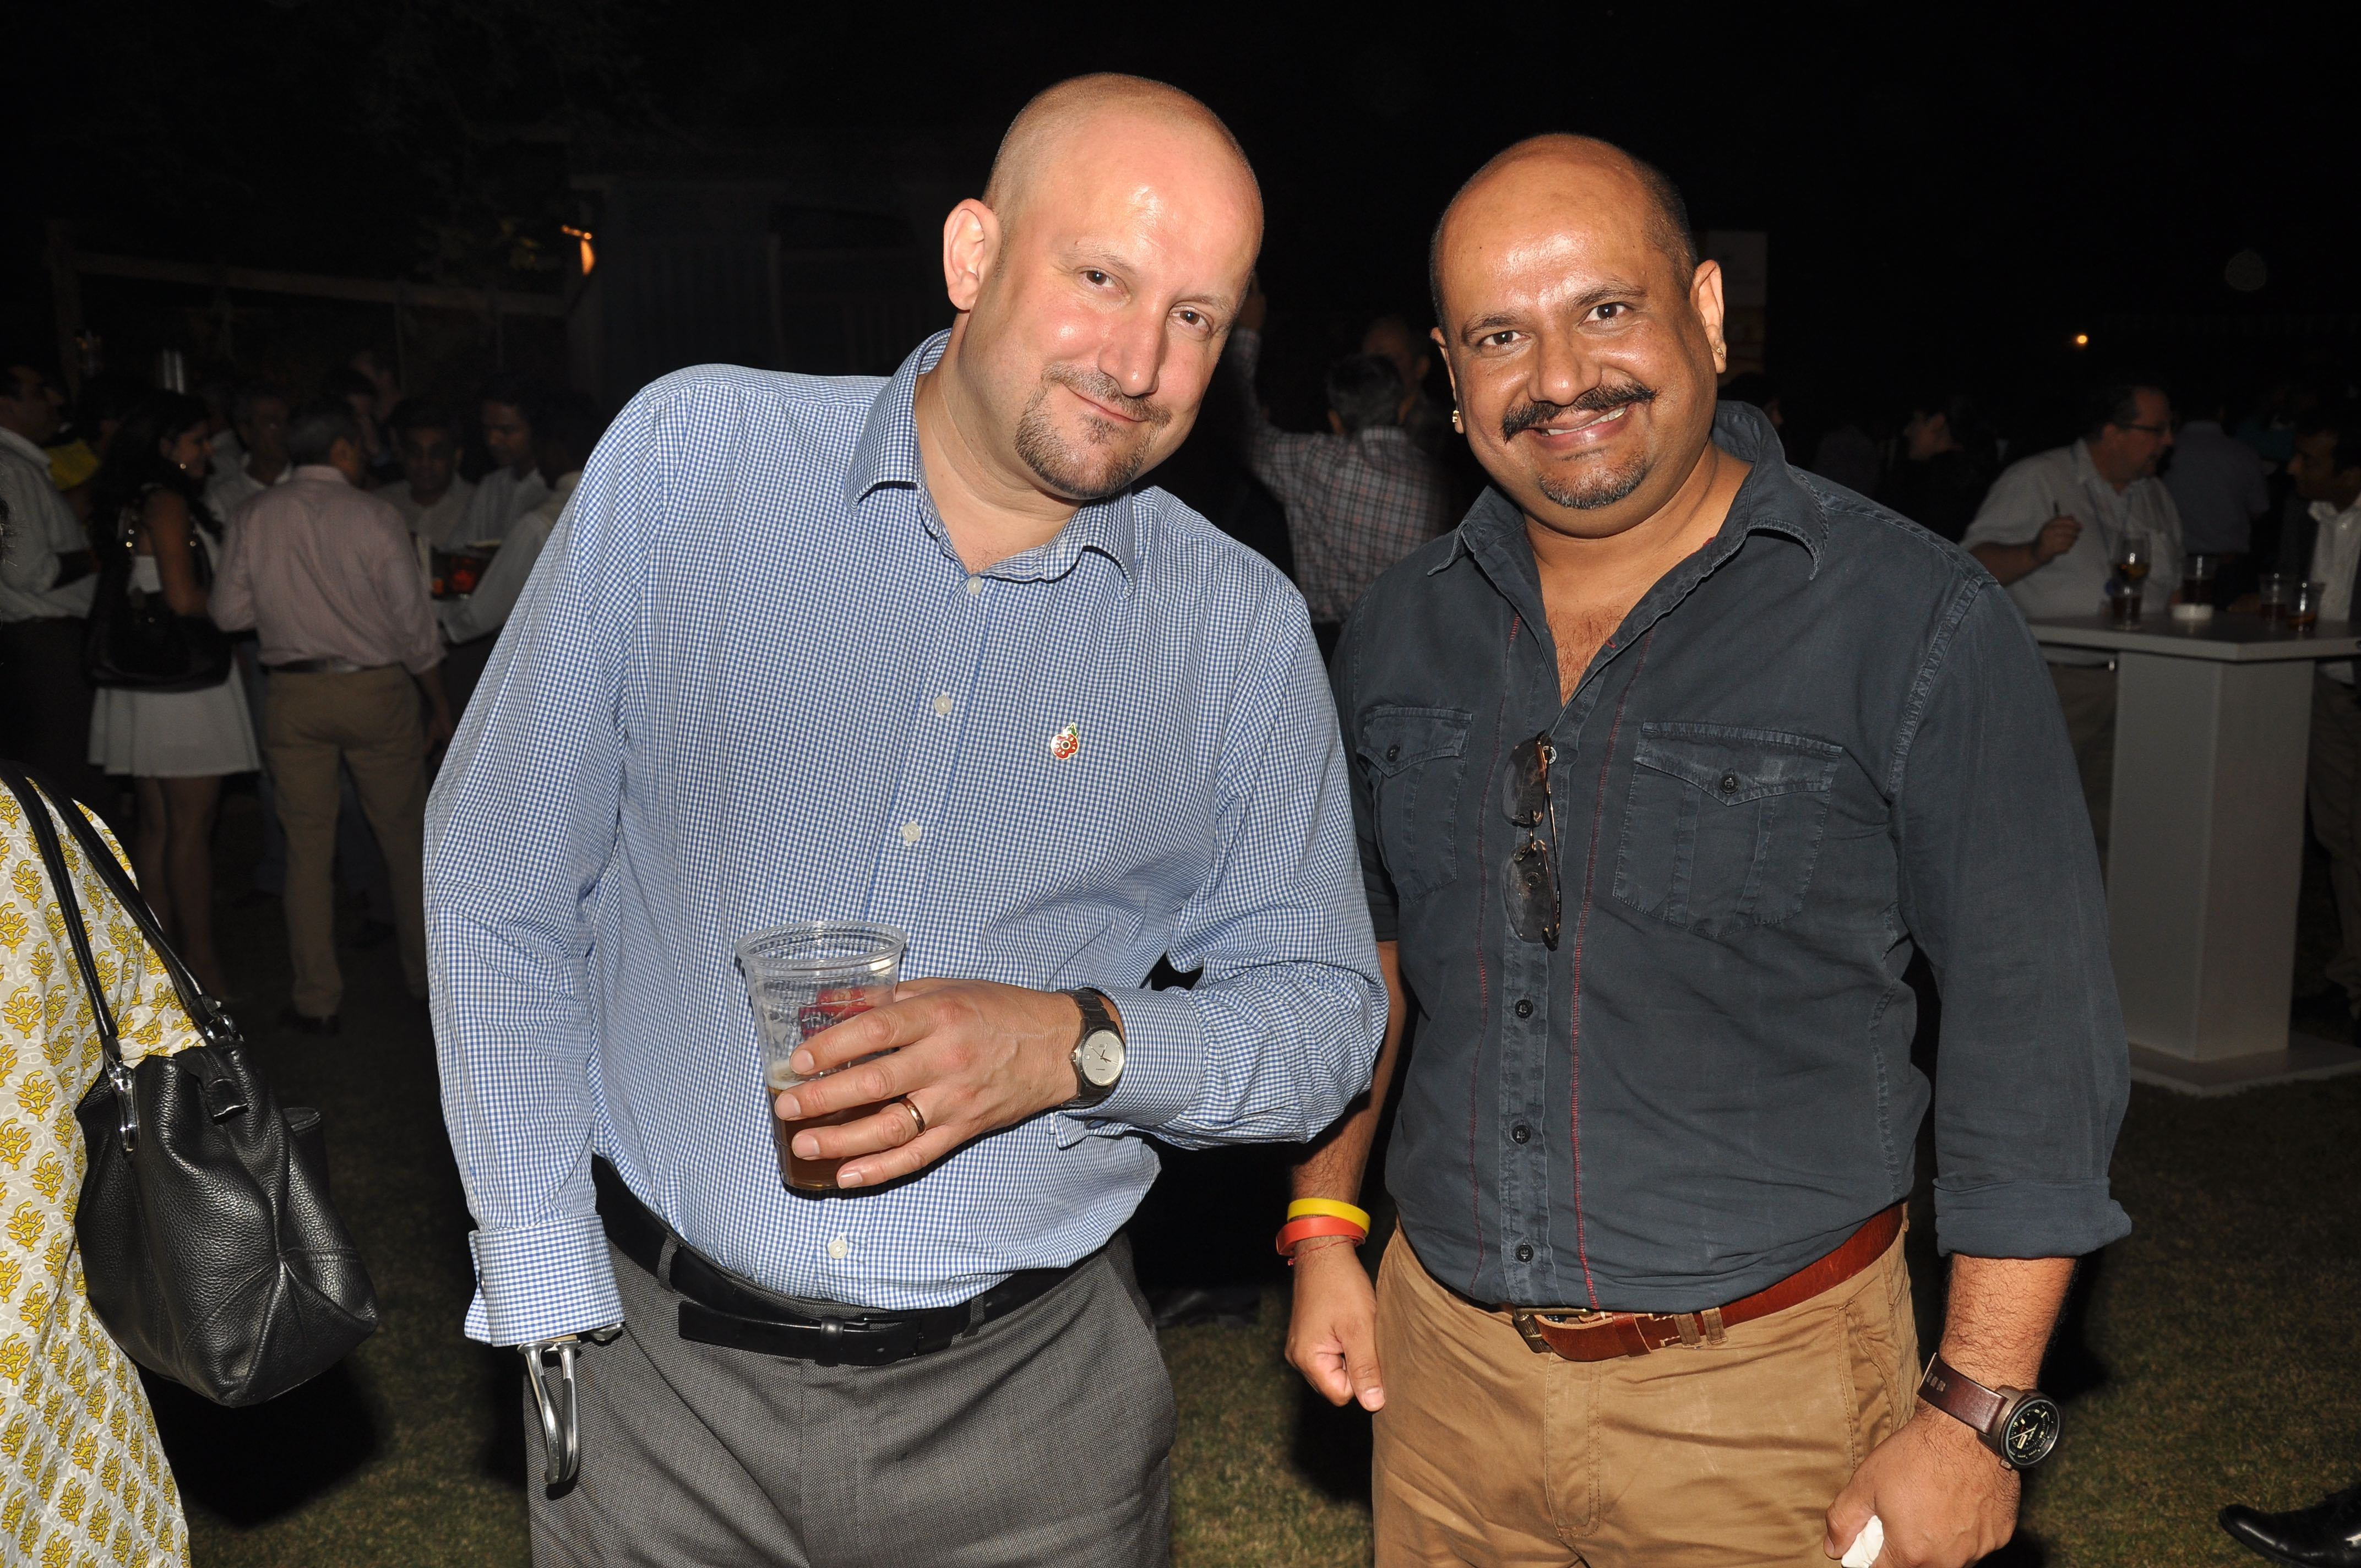 Launch of Witlinger- India's first indigenous specialty beer